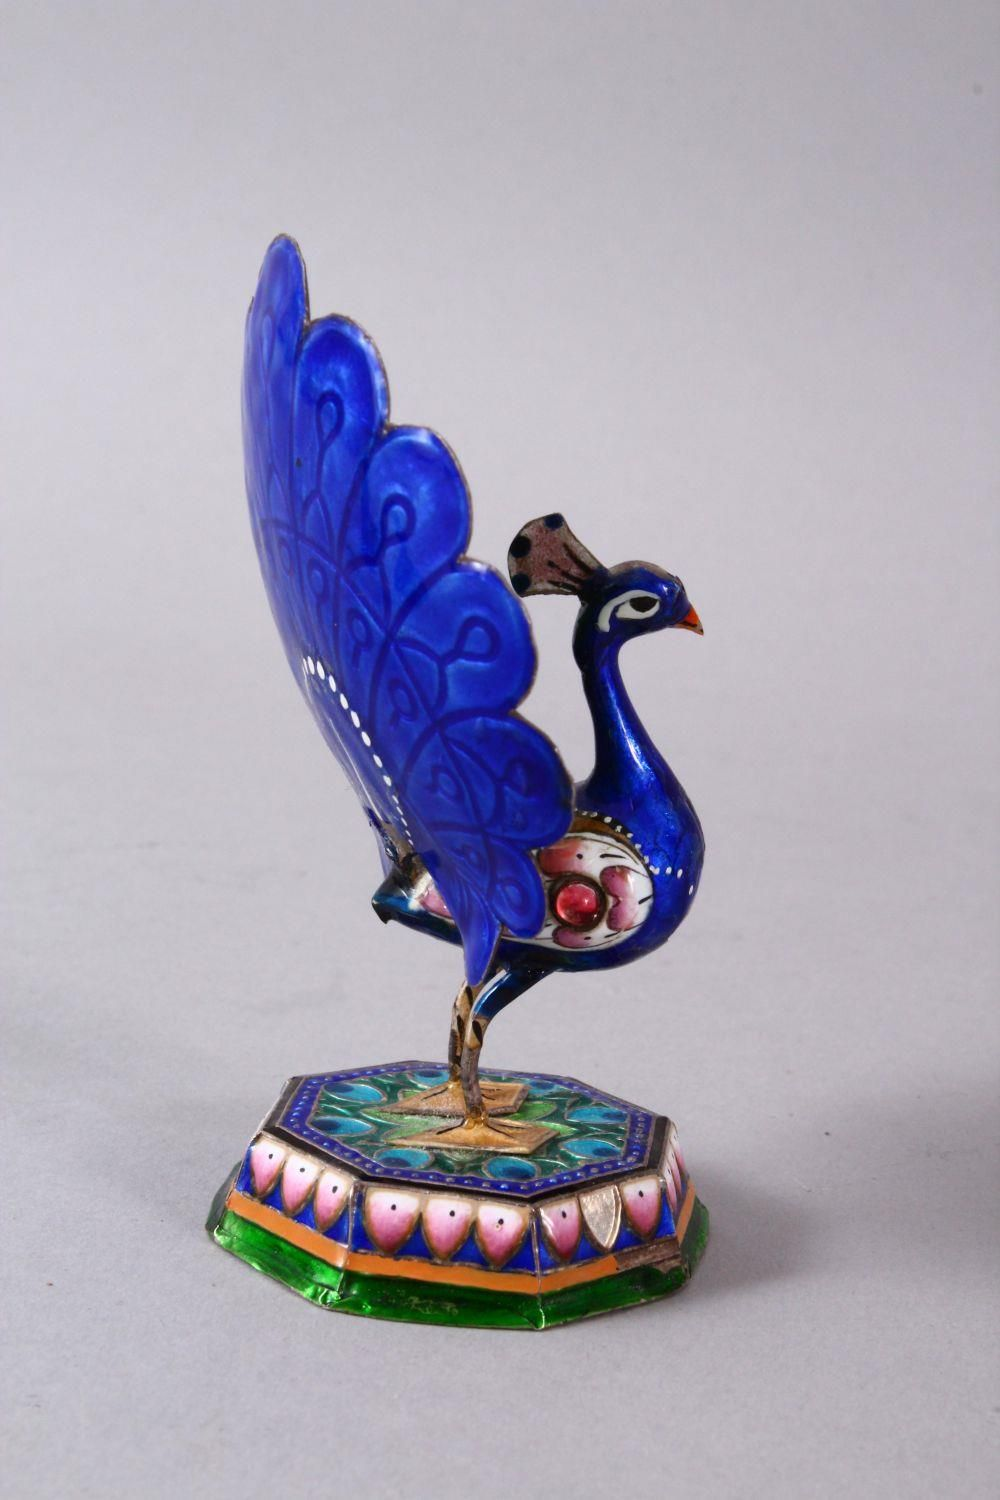 TWO 19TH / 20TH CENTURY INDIAN ENAMEL BIRD FIGURES, one of a peacock, the other of a bird upon - Image 3 of 8